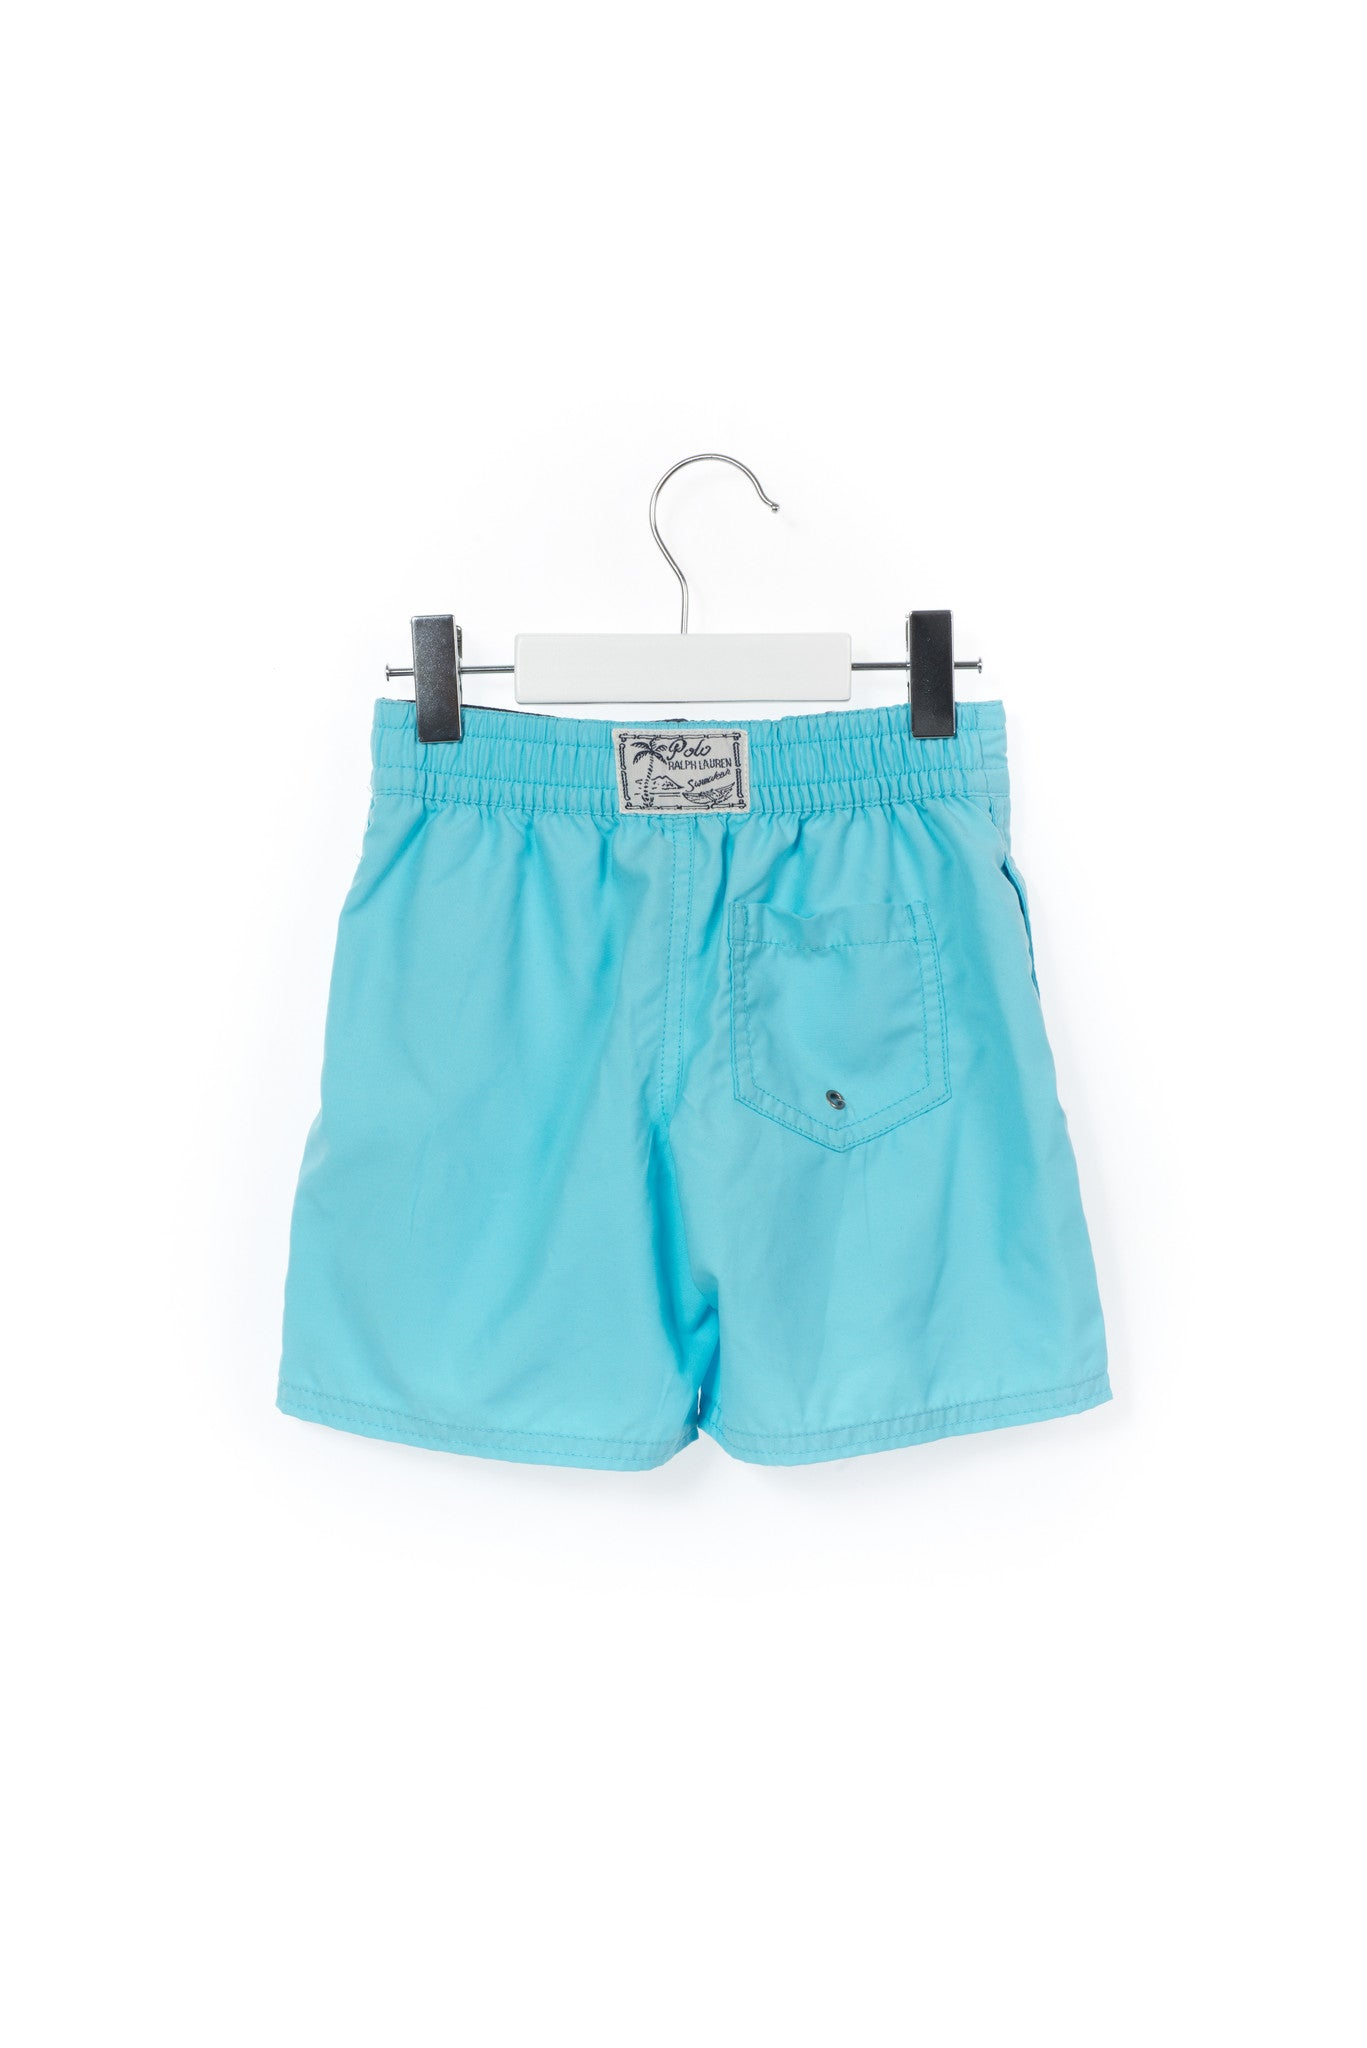 10001185 Polo Ralph Lauren Kids~Swimwear 3T at Retykle